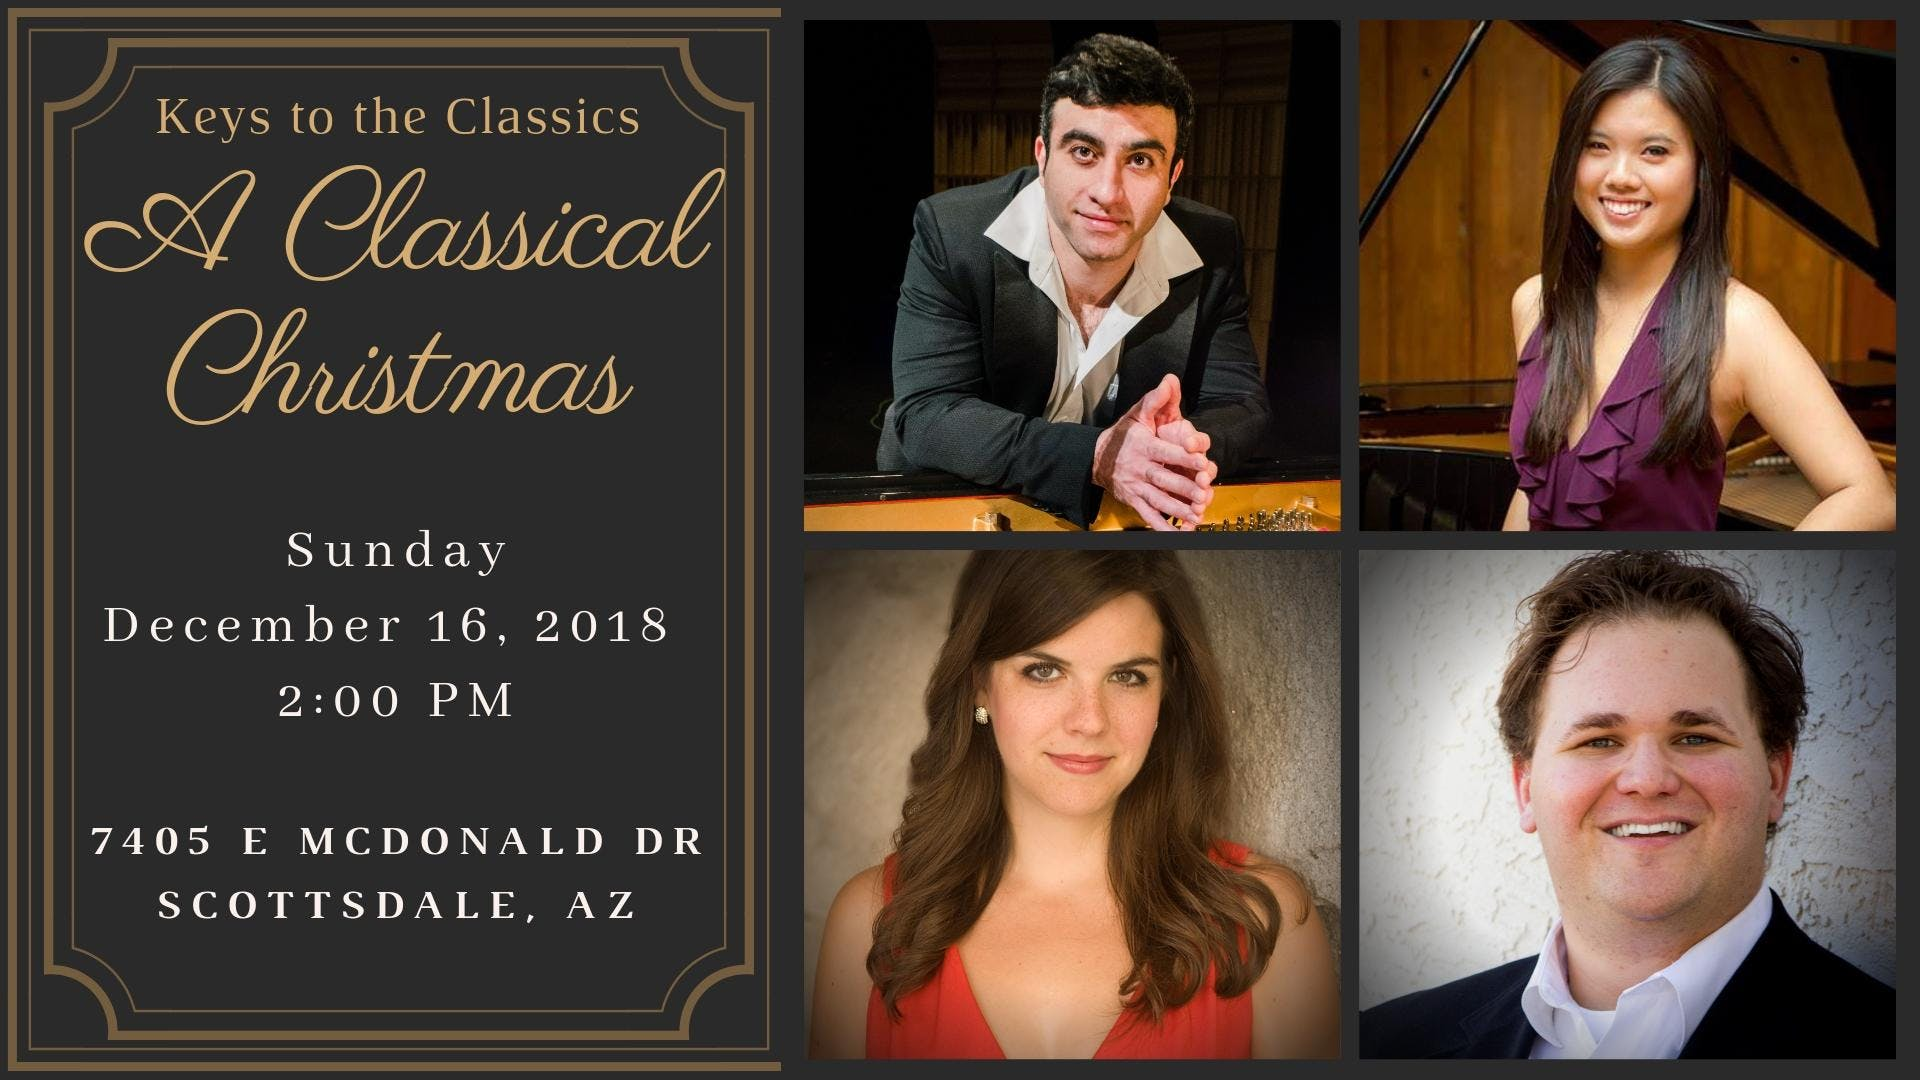 Keys to the Classics - A Classical Christmas